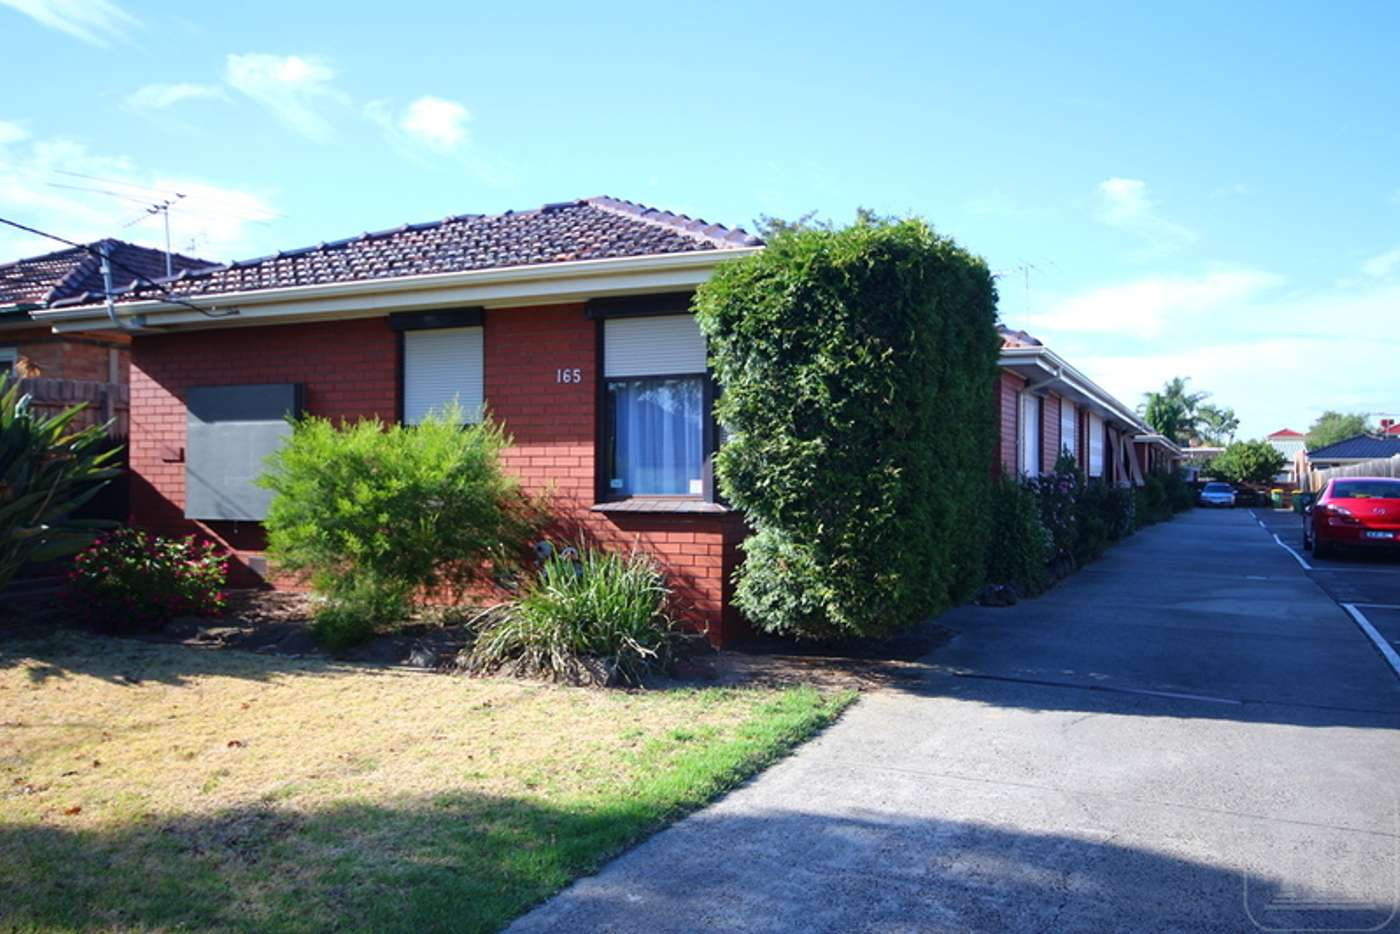 Main view of Homely villa listing, 5/165 Edwardes Street, Reservoir VIC 3073